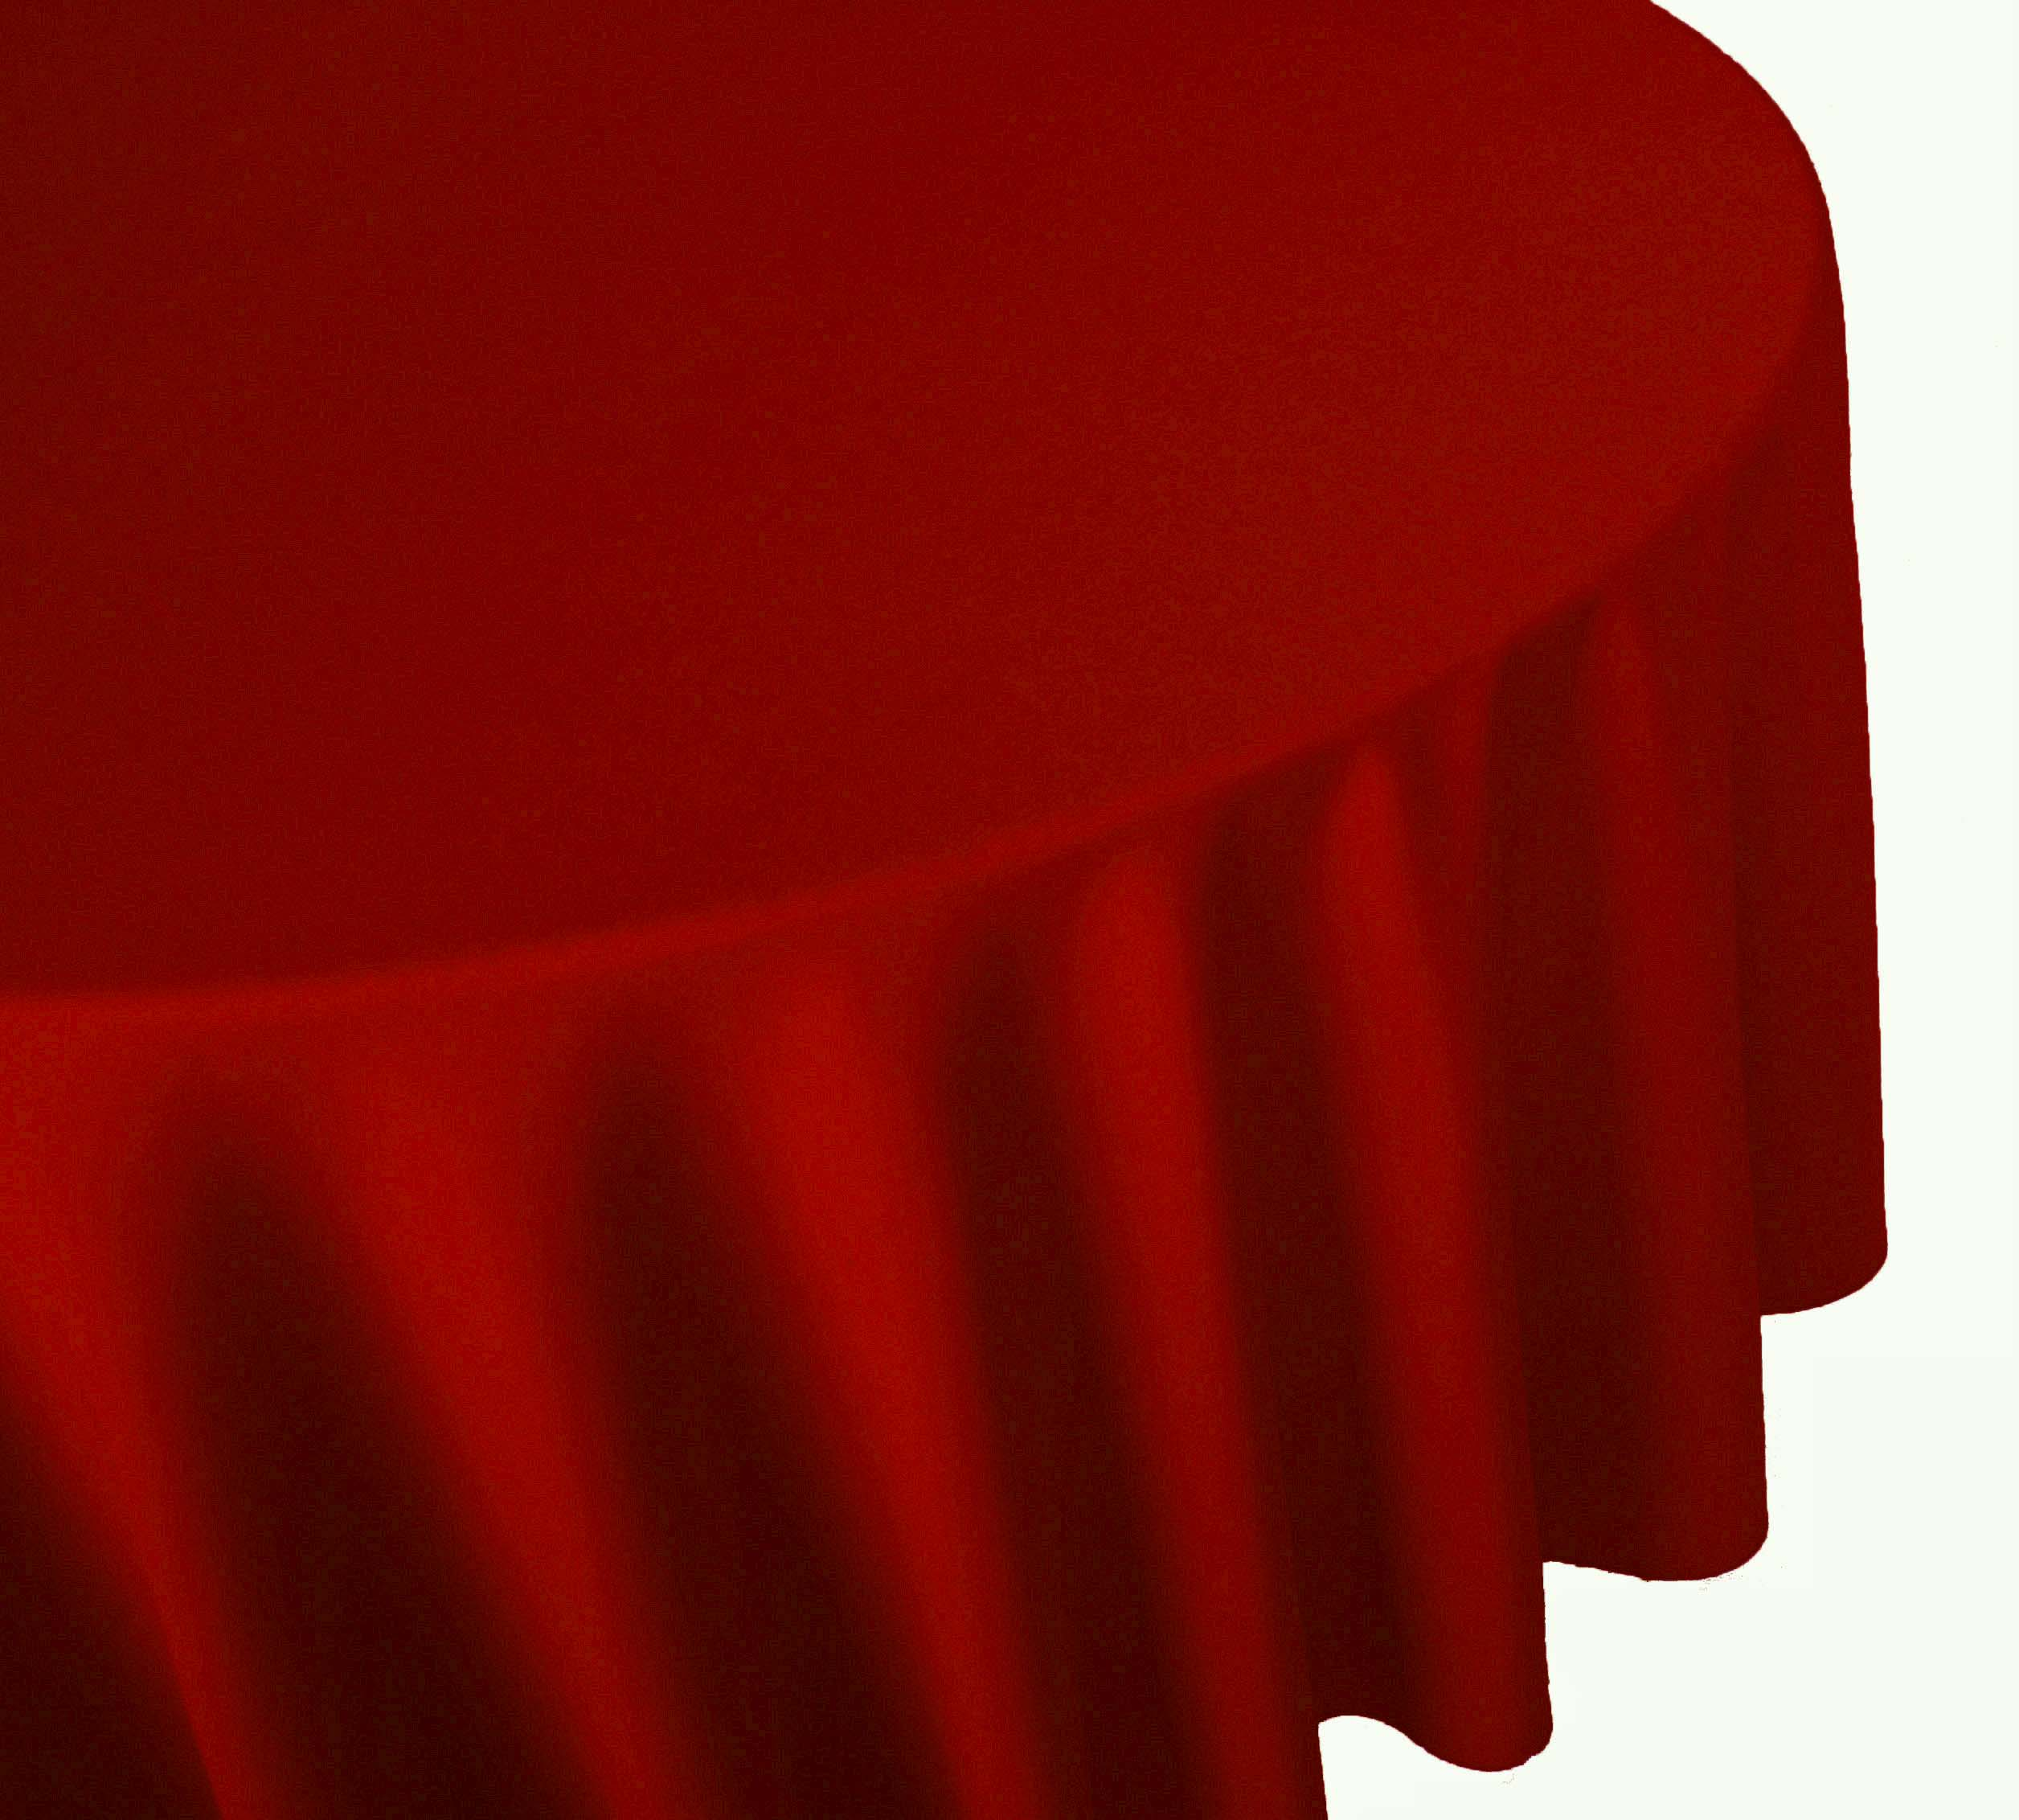 Red Linen Table Cover Cloth Banquet Round